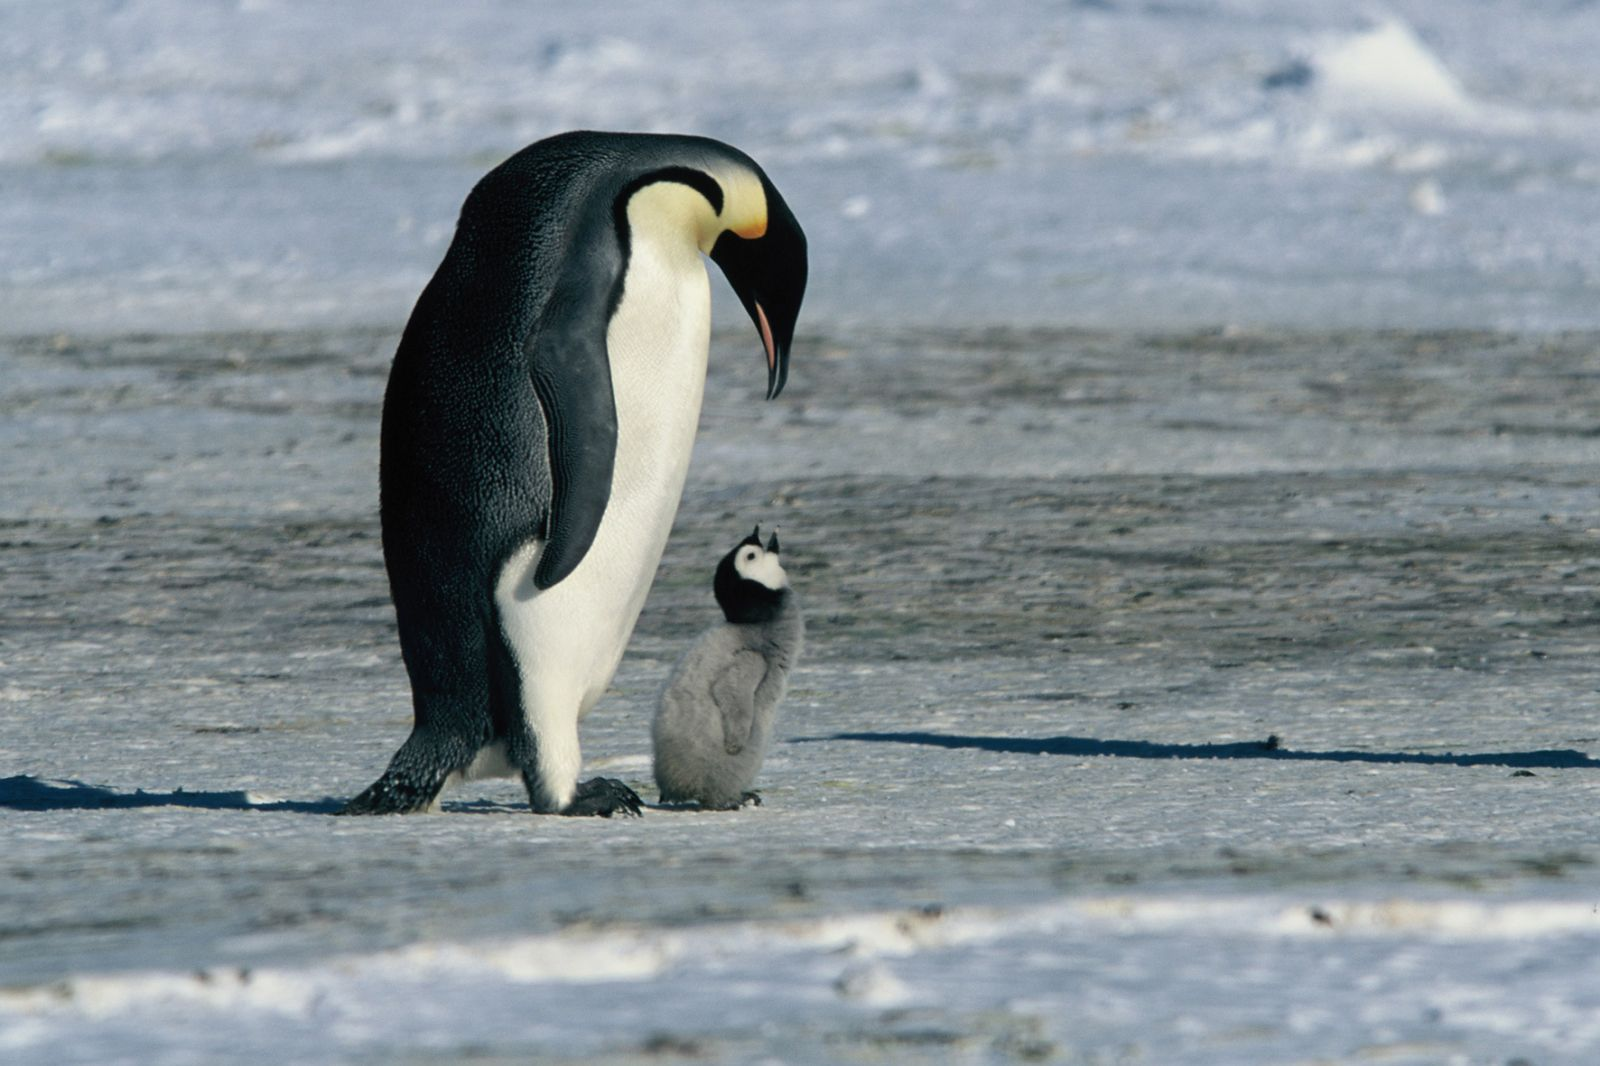 Film still from The March of the Penguins (France 2005, directed by Luc Jacquet): A penguin and a penguin chick in an ice landscape